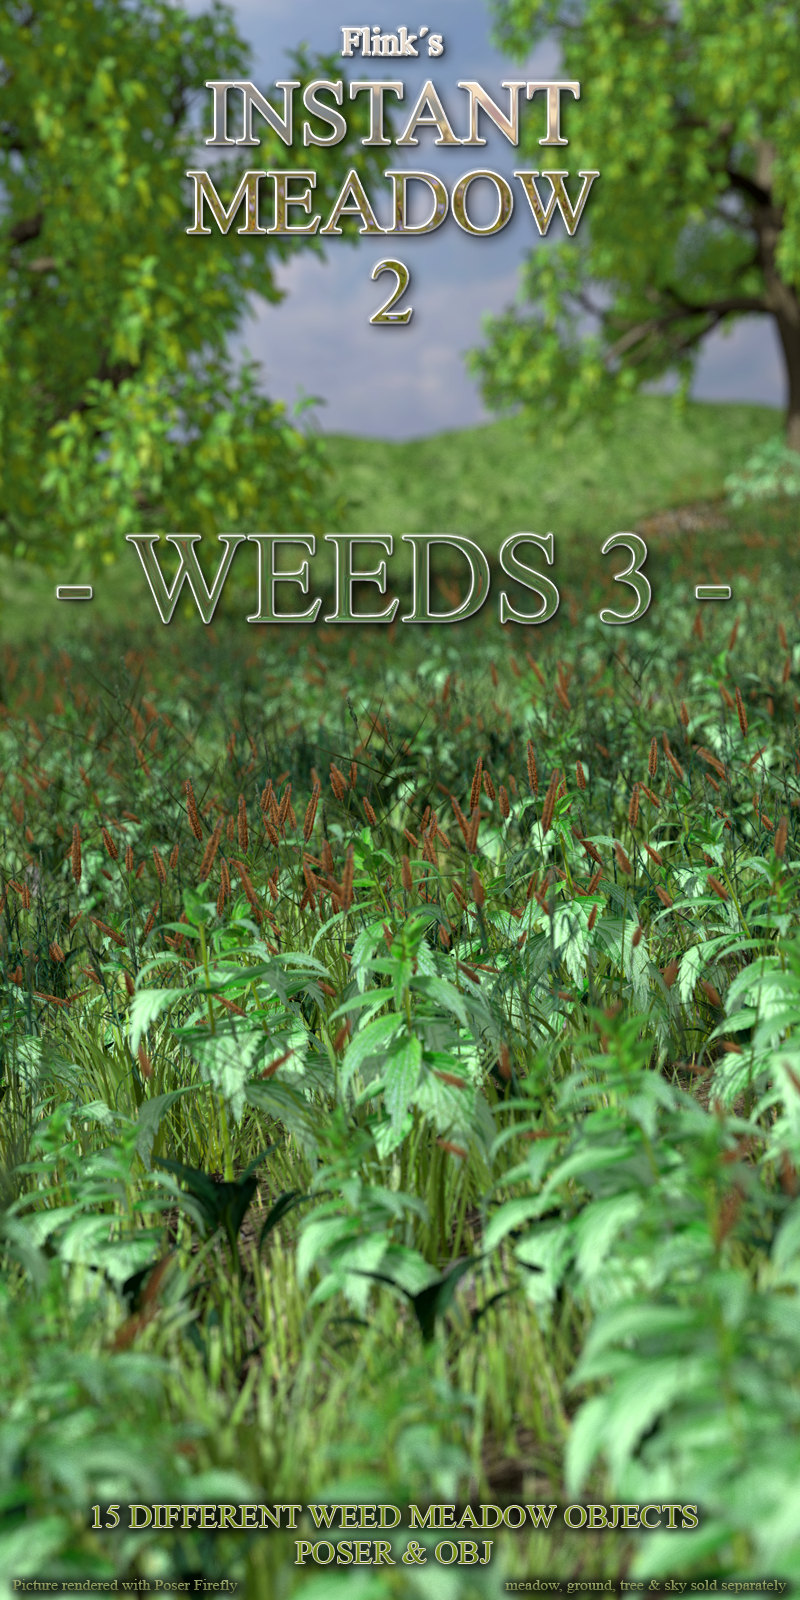 Flinks Instant Meadow 2 - Weeds 3